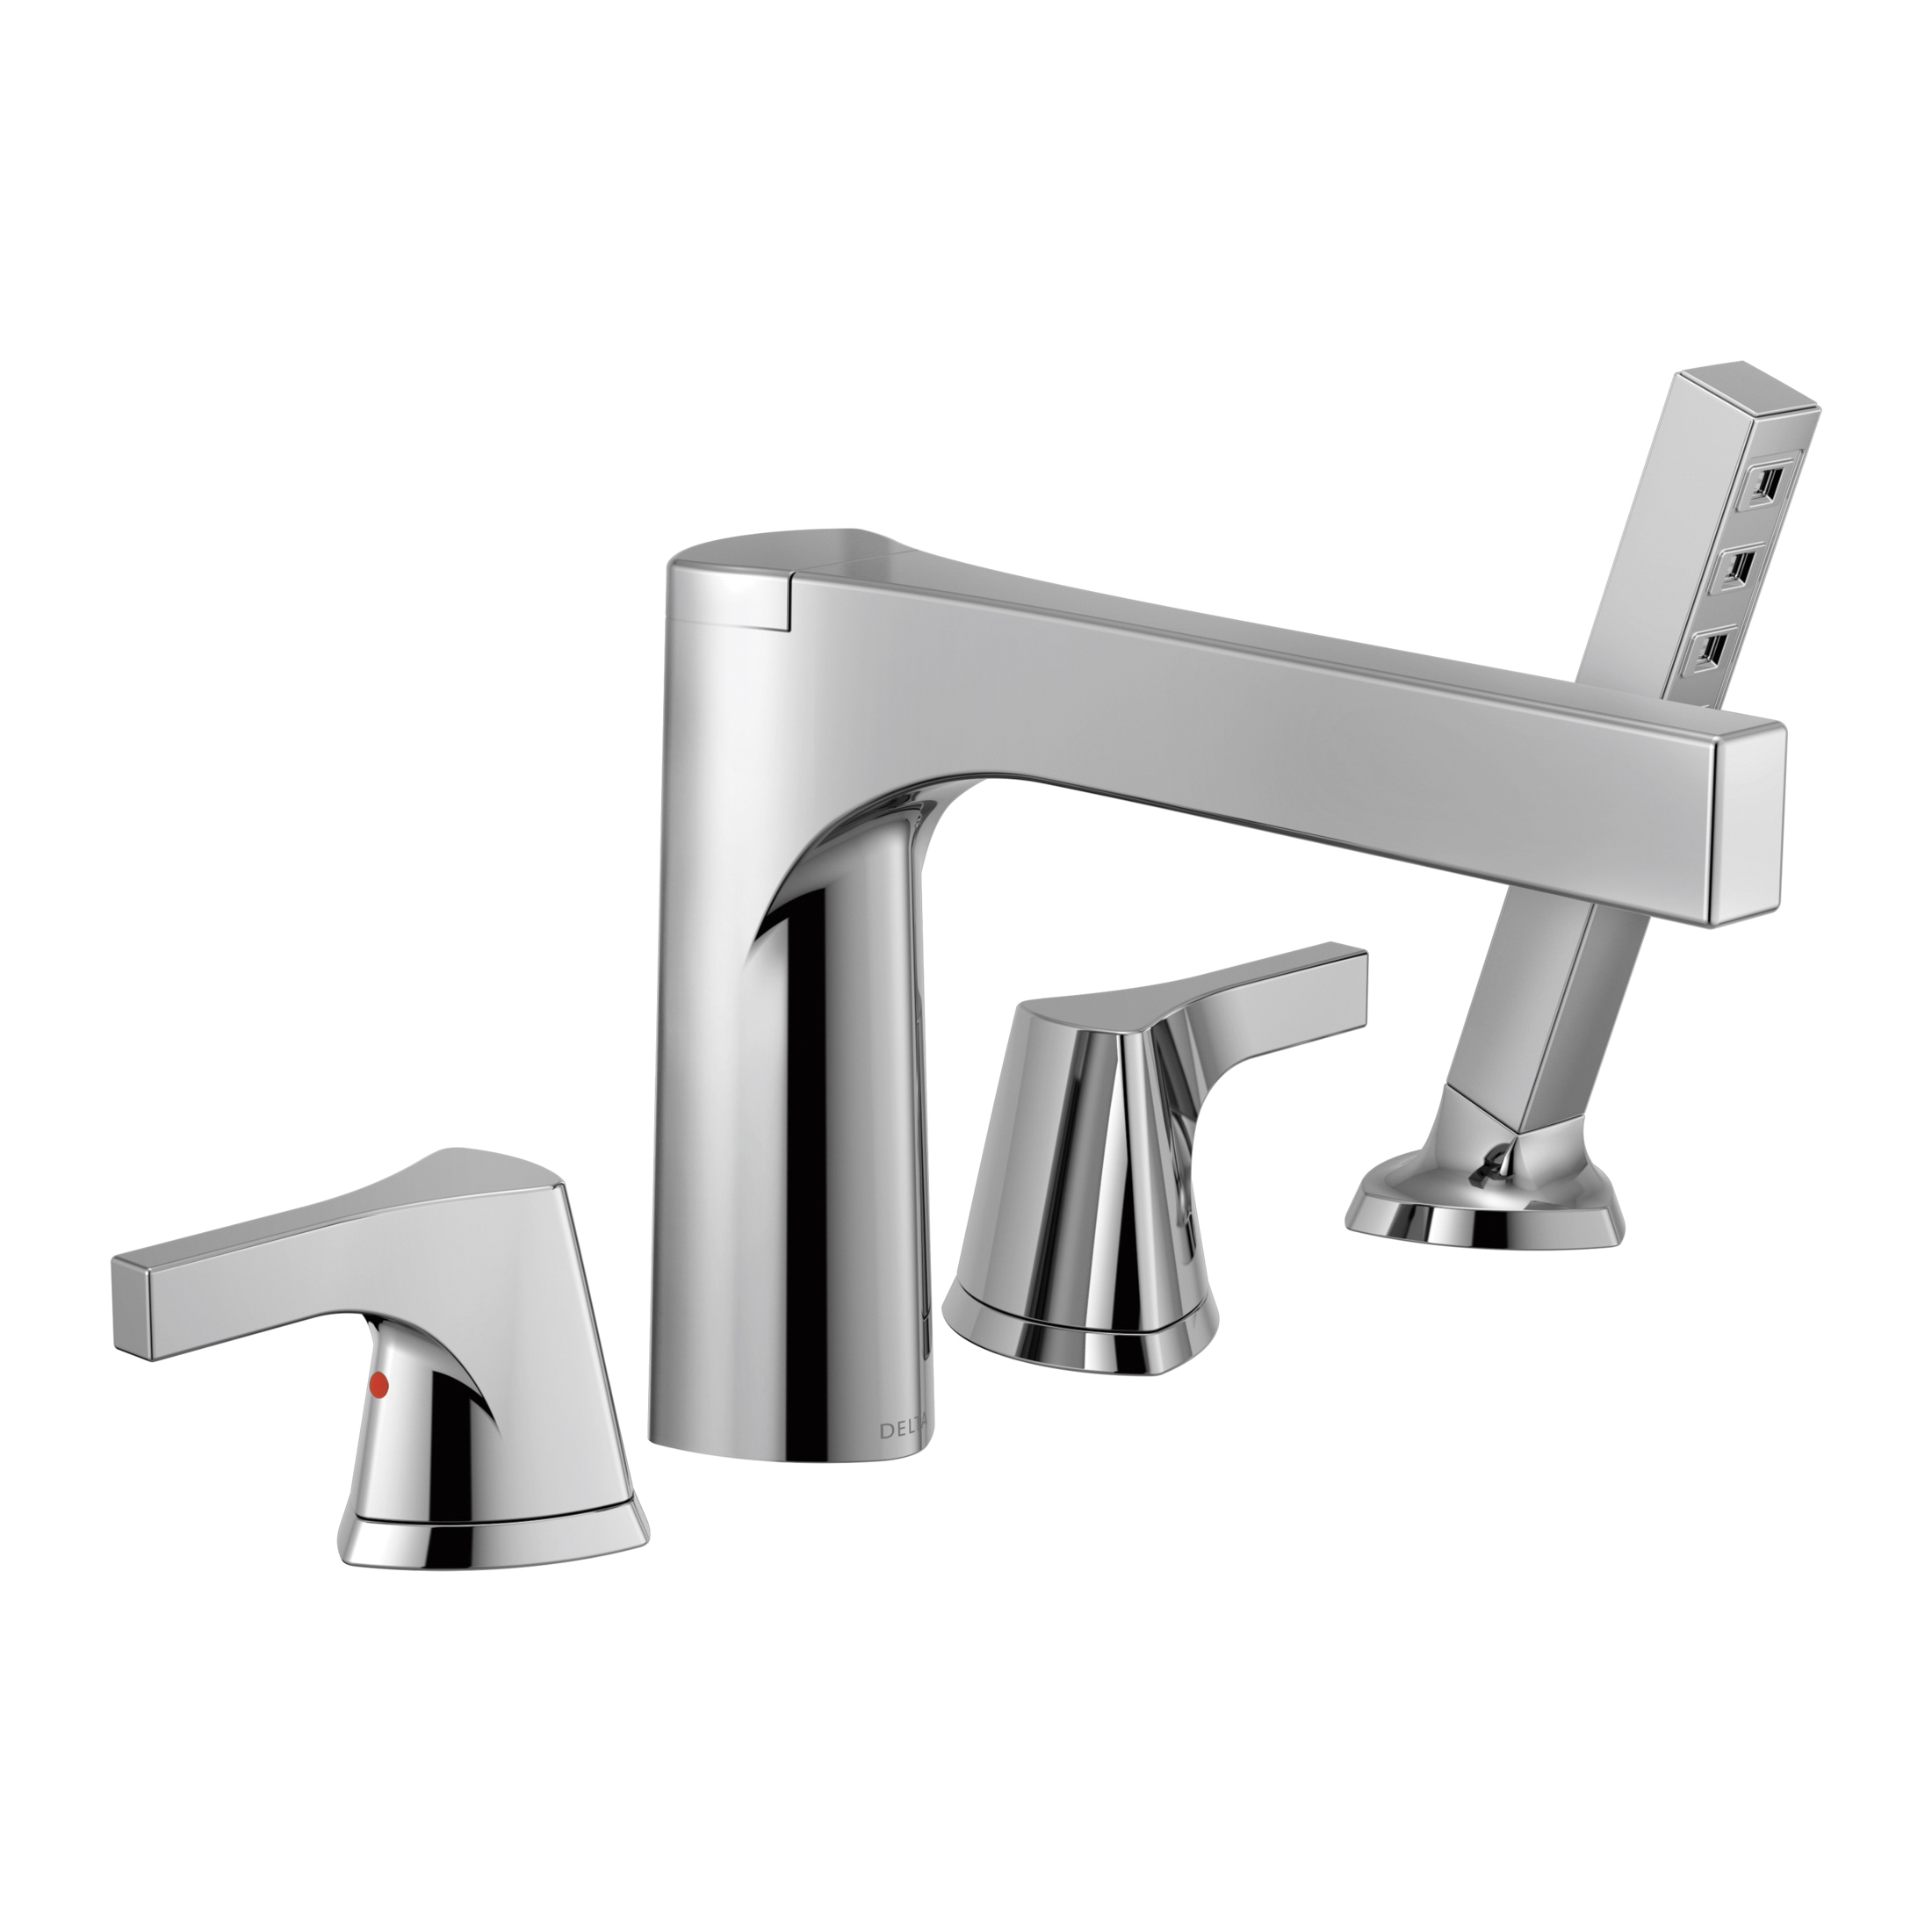 DELTA® T4774 Zura™ Roman Tub Trim, 2 gpm, 11 to 16 in Center, Chrome Plated, 2 Handles, Hand Shower Yes/No: Yes, Domestic